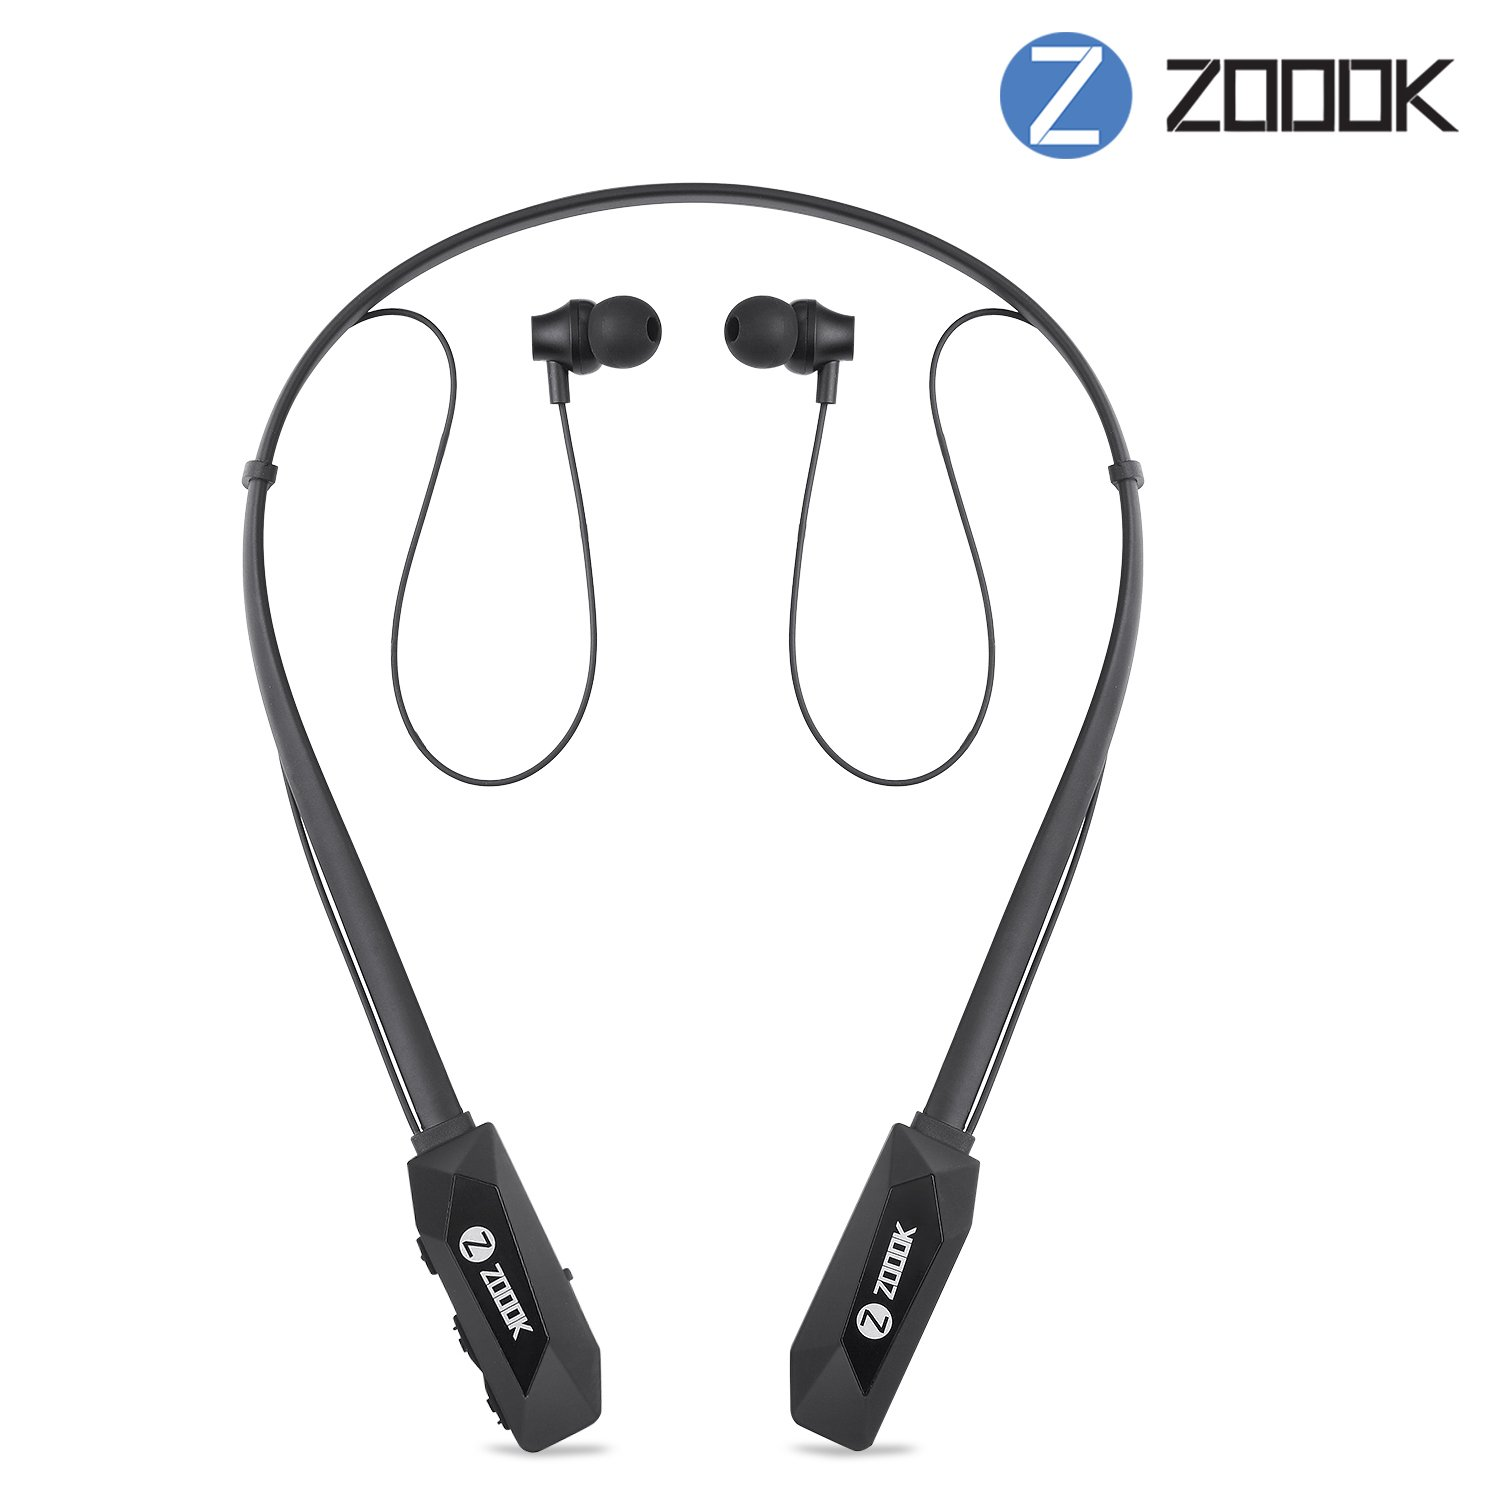 Zoook ZB-Jazz Claws Neckband Stereo Bluetooth..